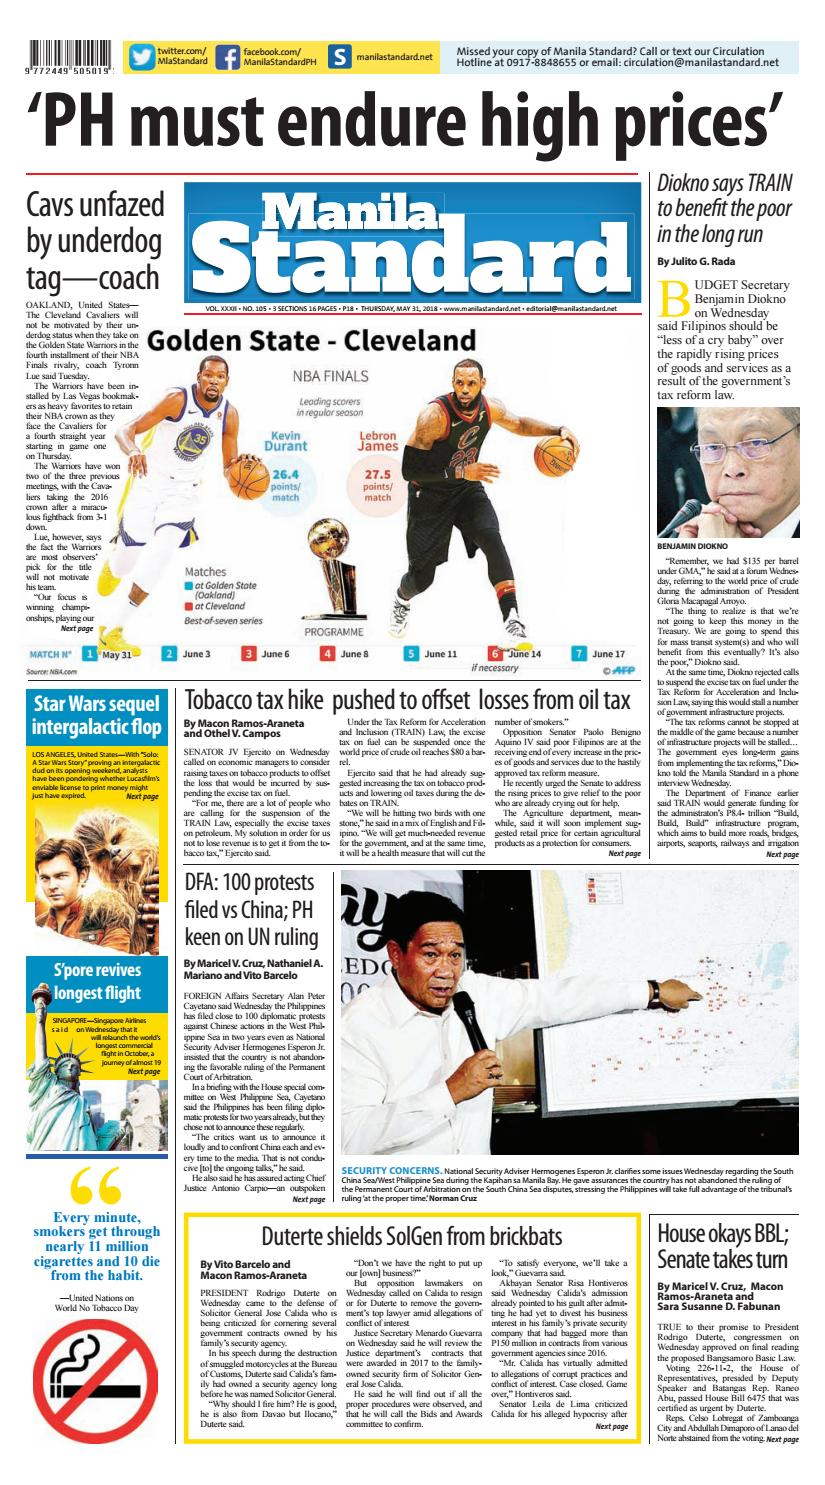 Manila Standard 2018 May 31 Thursday By Issuu Faulty Circuit Breaker Blamed For Outage At Nationals Park Fox